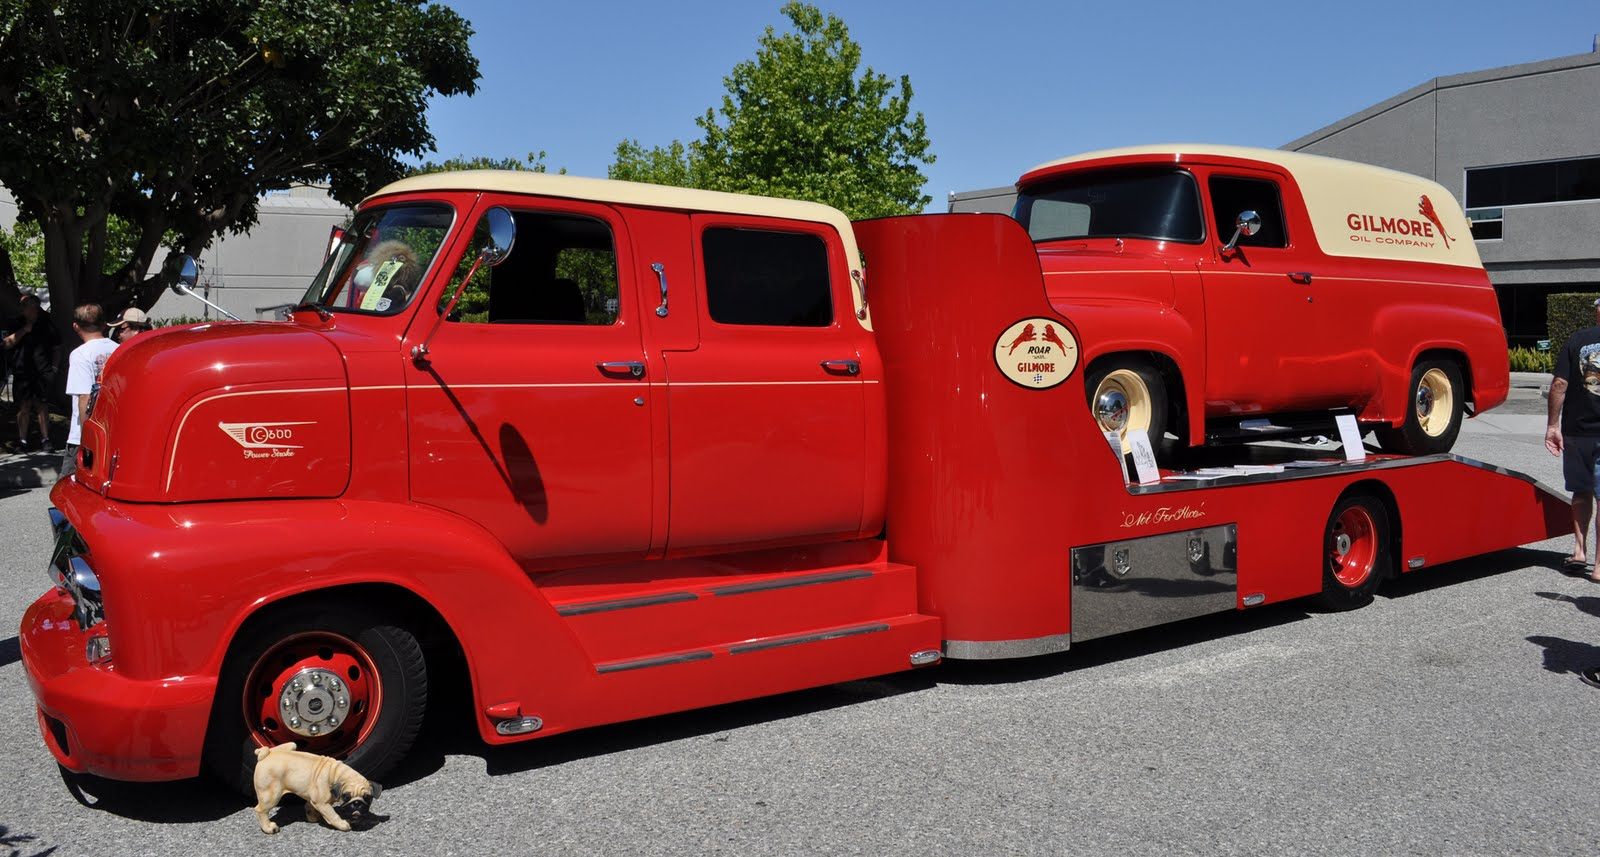 Http justacarguy blogspot com 2010 03 king cab 1950s coe ford hauler from html for how it looked in 2010 with a pick up on the back